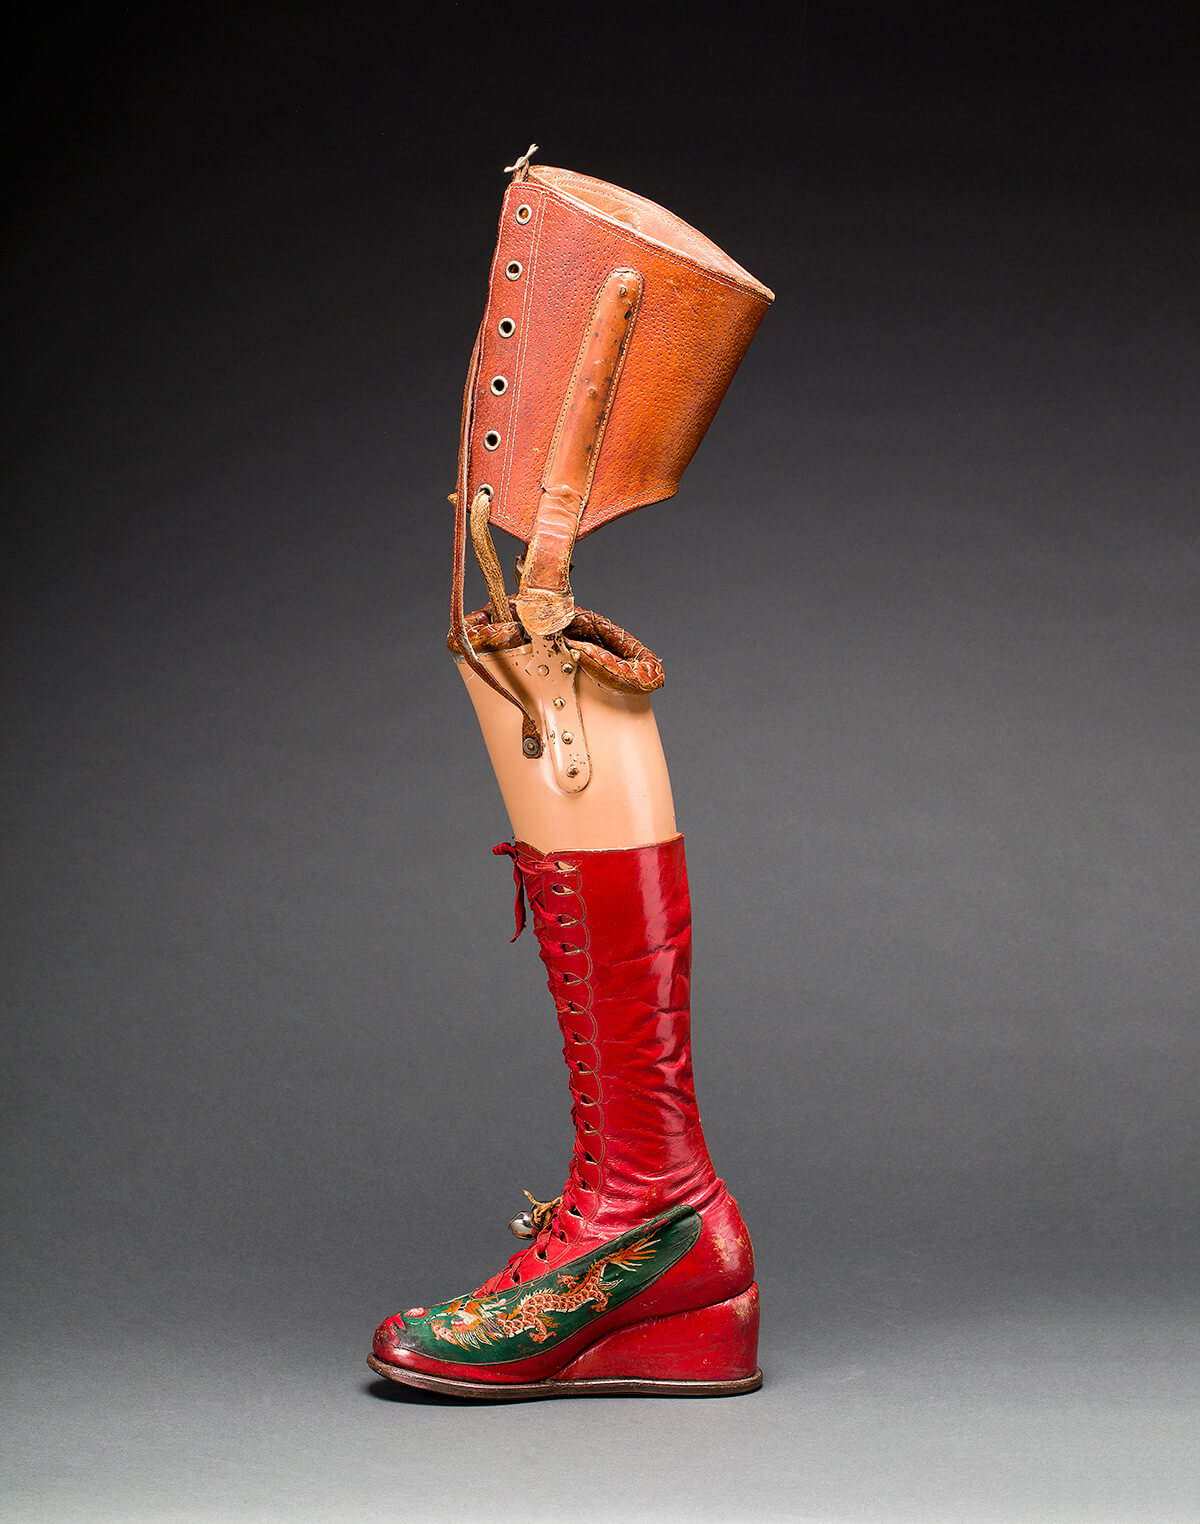 Frida Kahlo's prosthetic leg with leather boot. Applique?d silk with embroidered Chinese motifs. Photograph Javier Hinojosa. Museo Frida Kahlo. © Diego Riviera and Frida Kahlo Archives, Banco de Me?xico, Fiduciary of the Trust of the Diego Riviera and Frida Kahlo Museums.